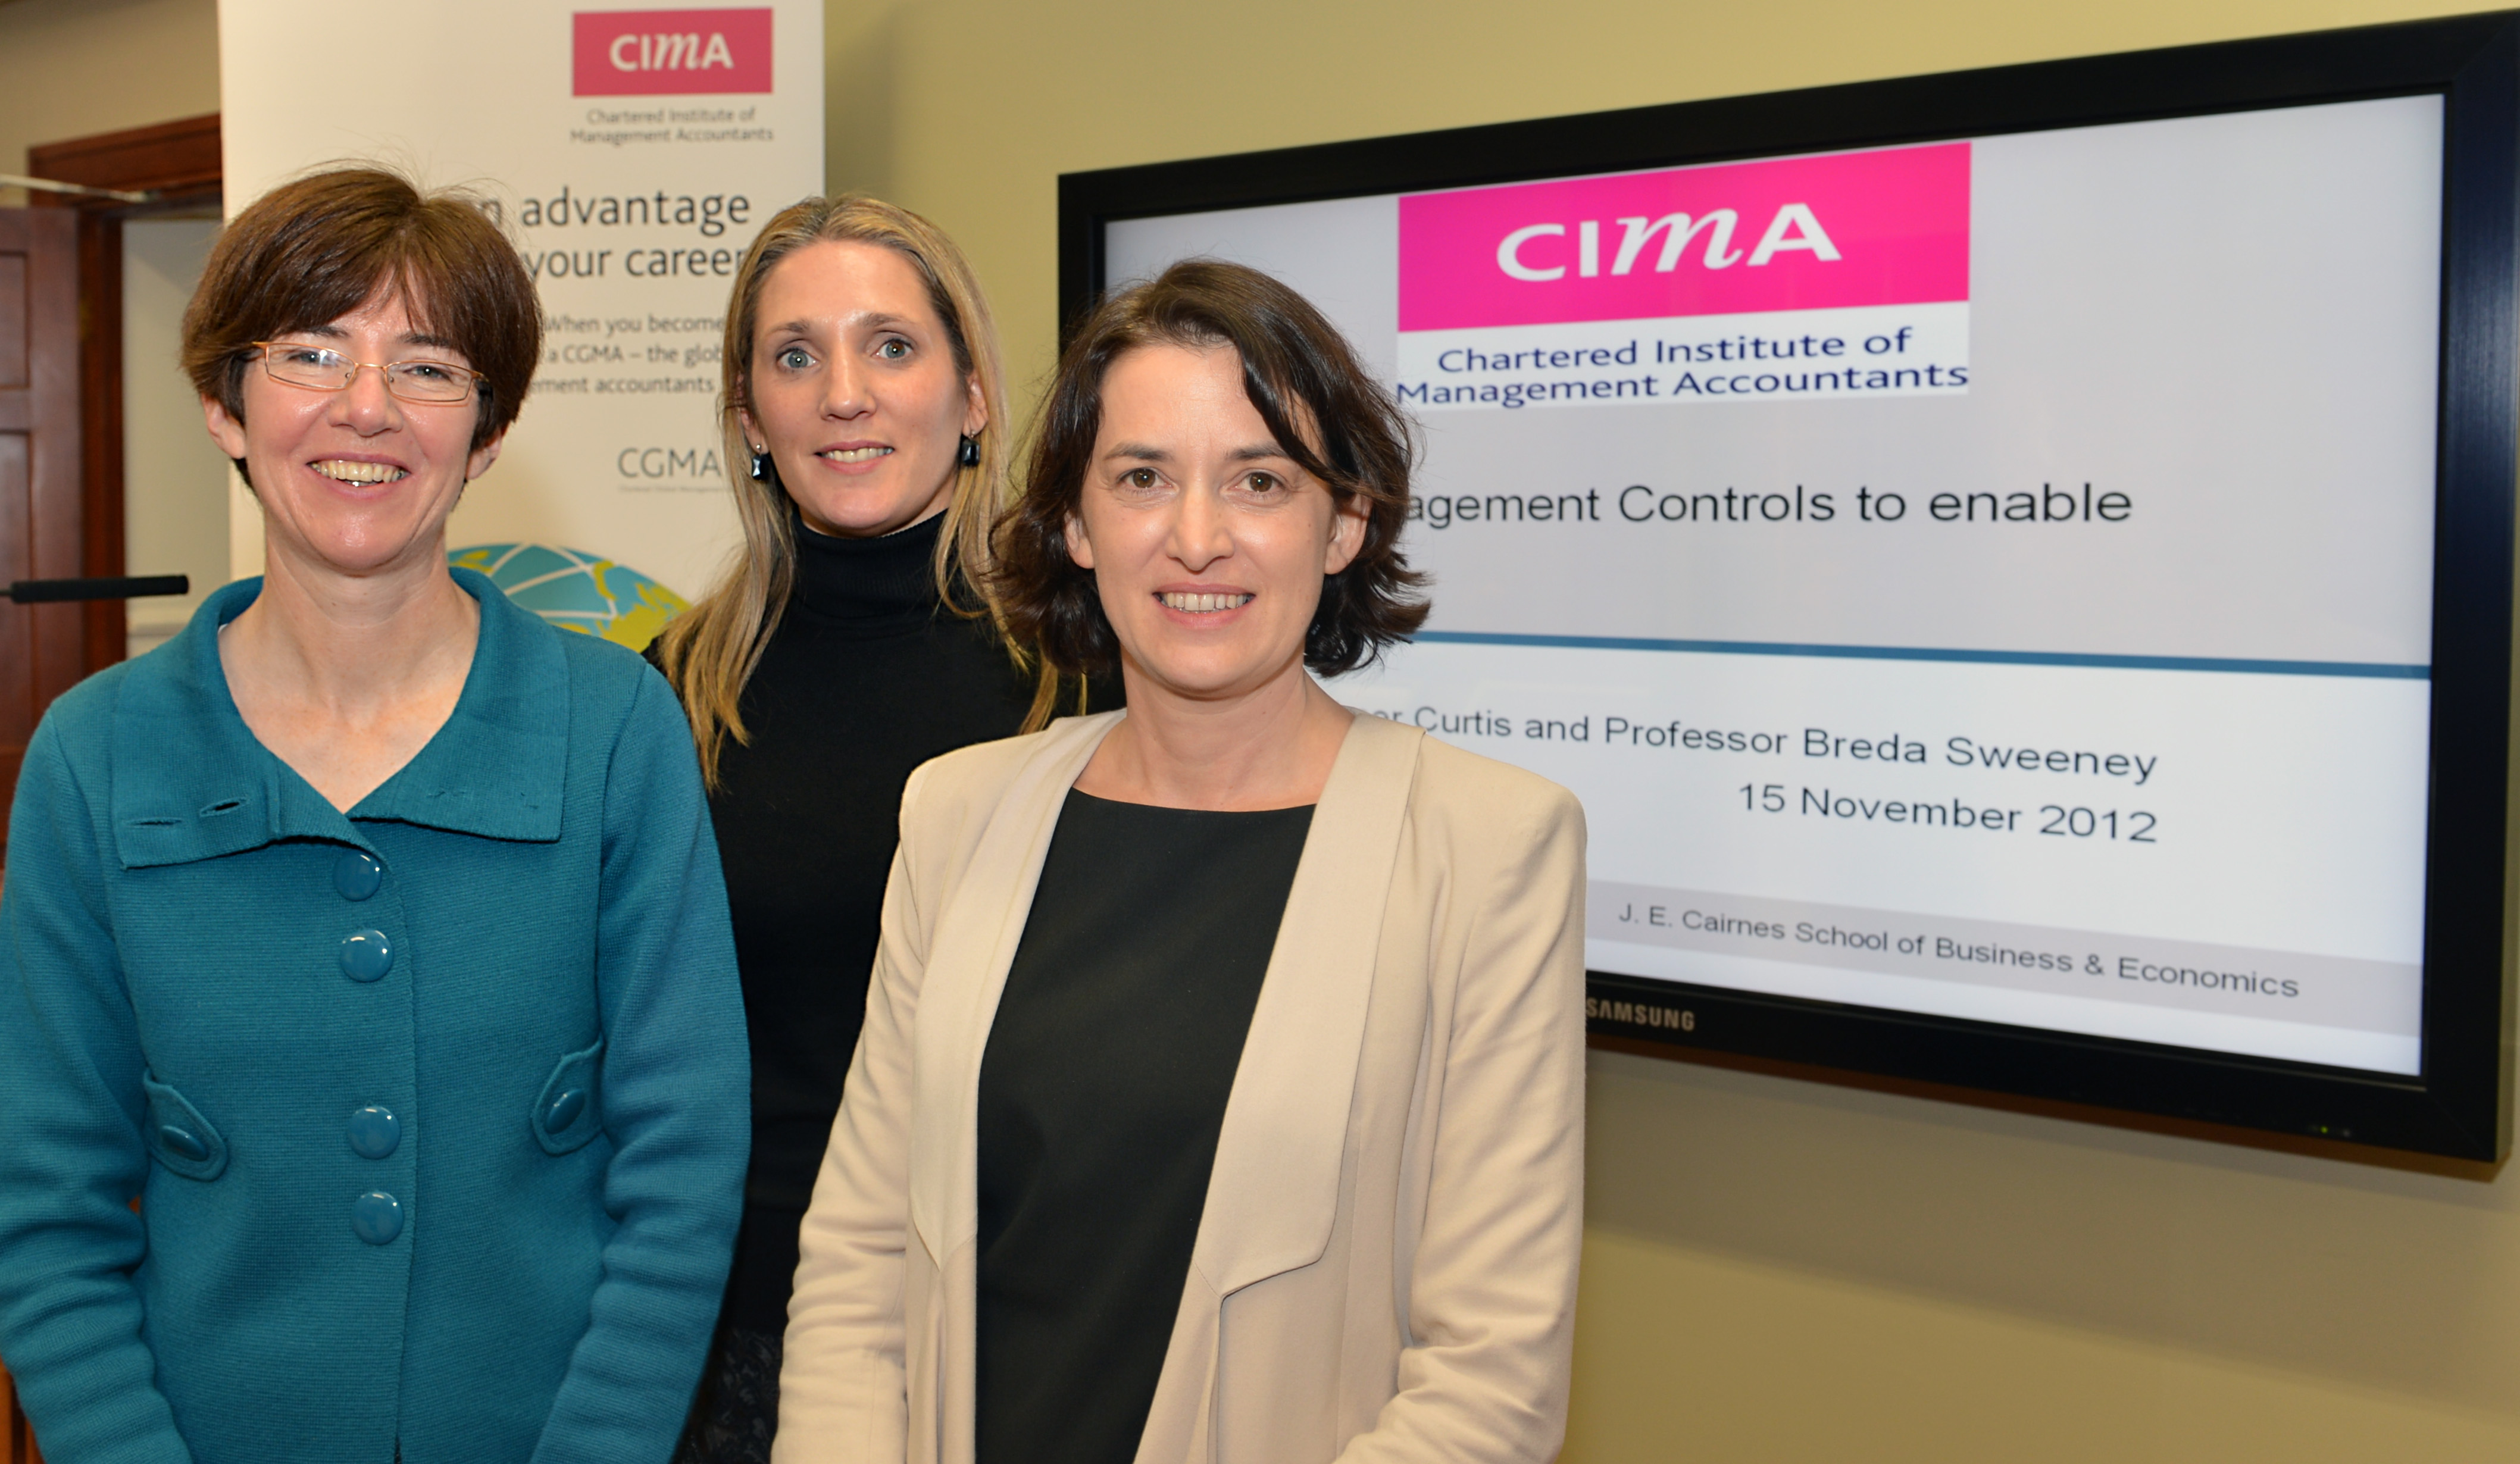 Prof Breda Sweeney (NUI Galway), Nicola Glynn (CIMA) and Dr Emer Curtis (NUI Galway) pictured at the CIMA Workshop 'Using Management controls to enable Innovation'